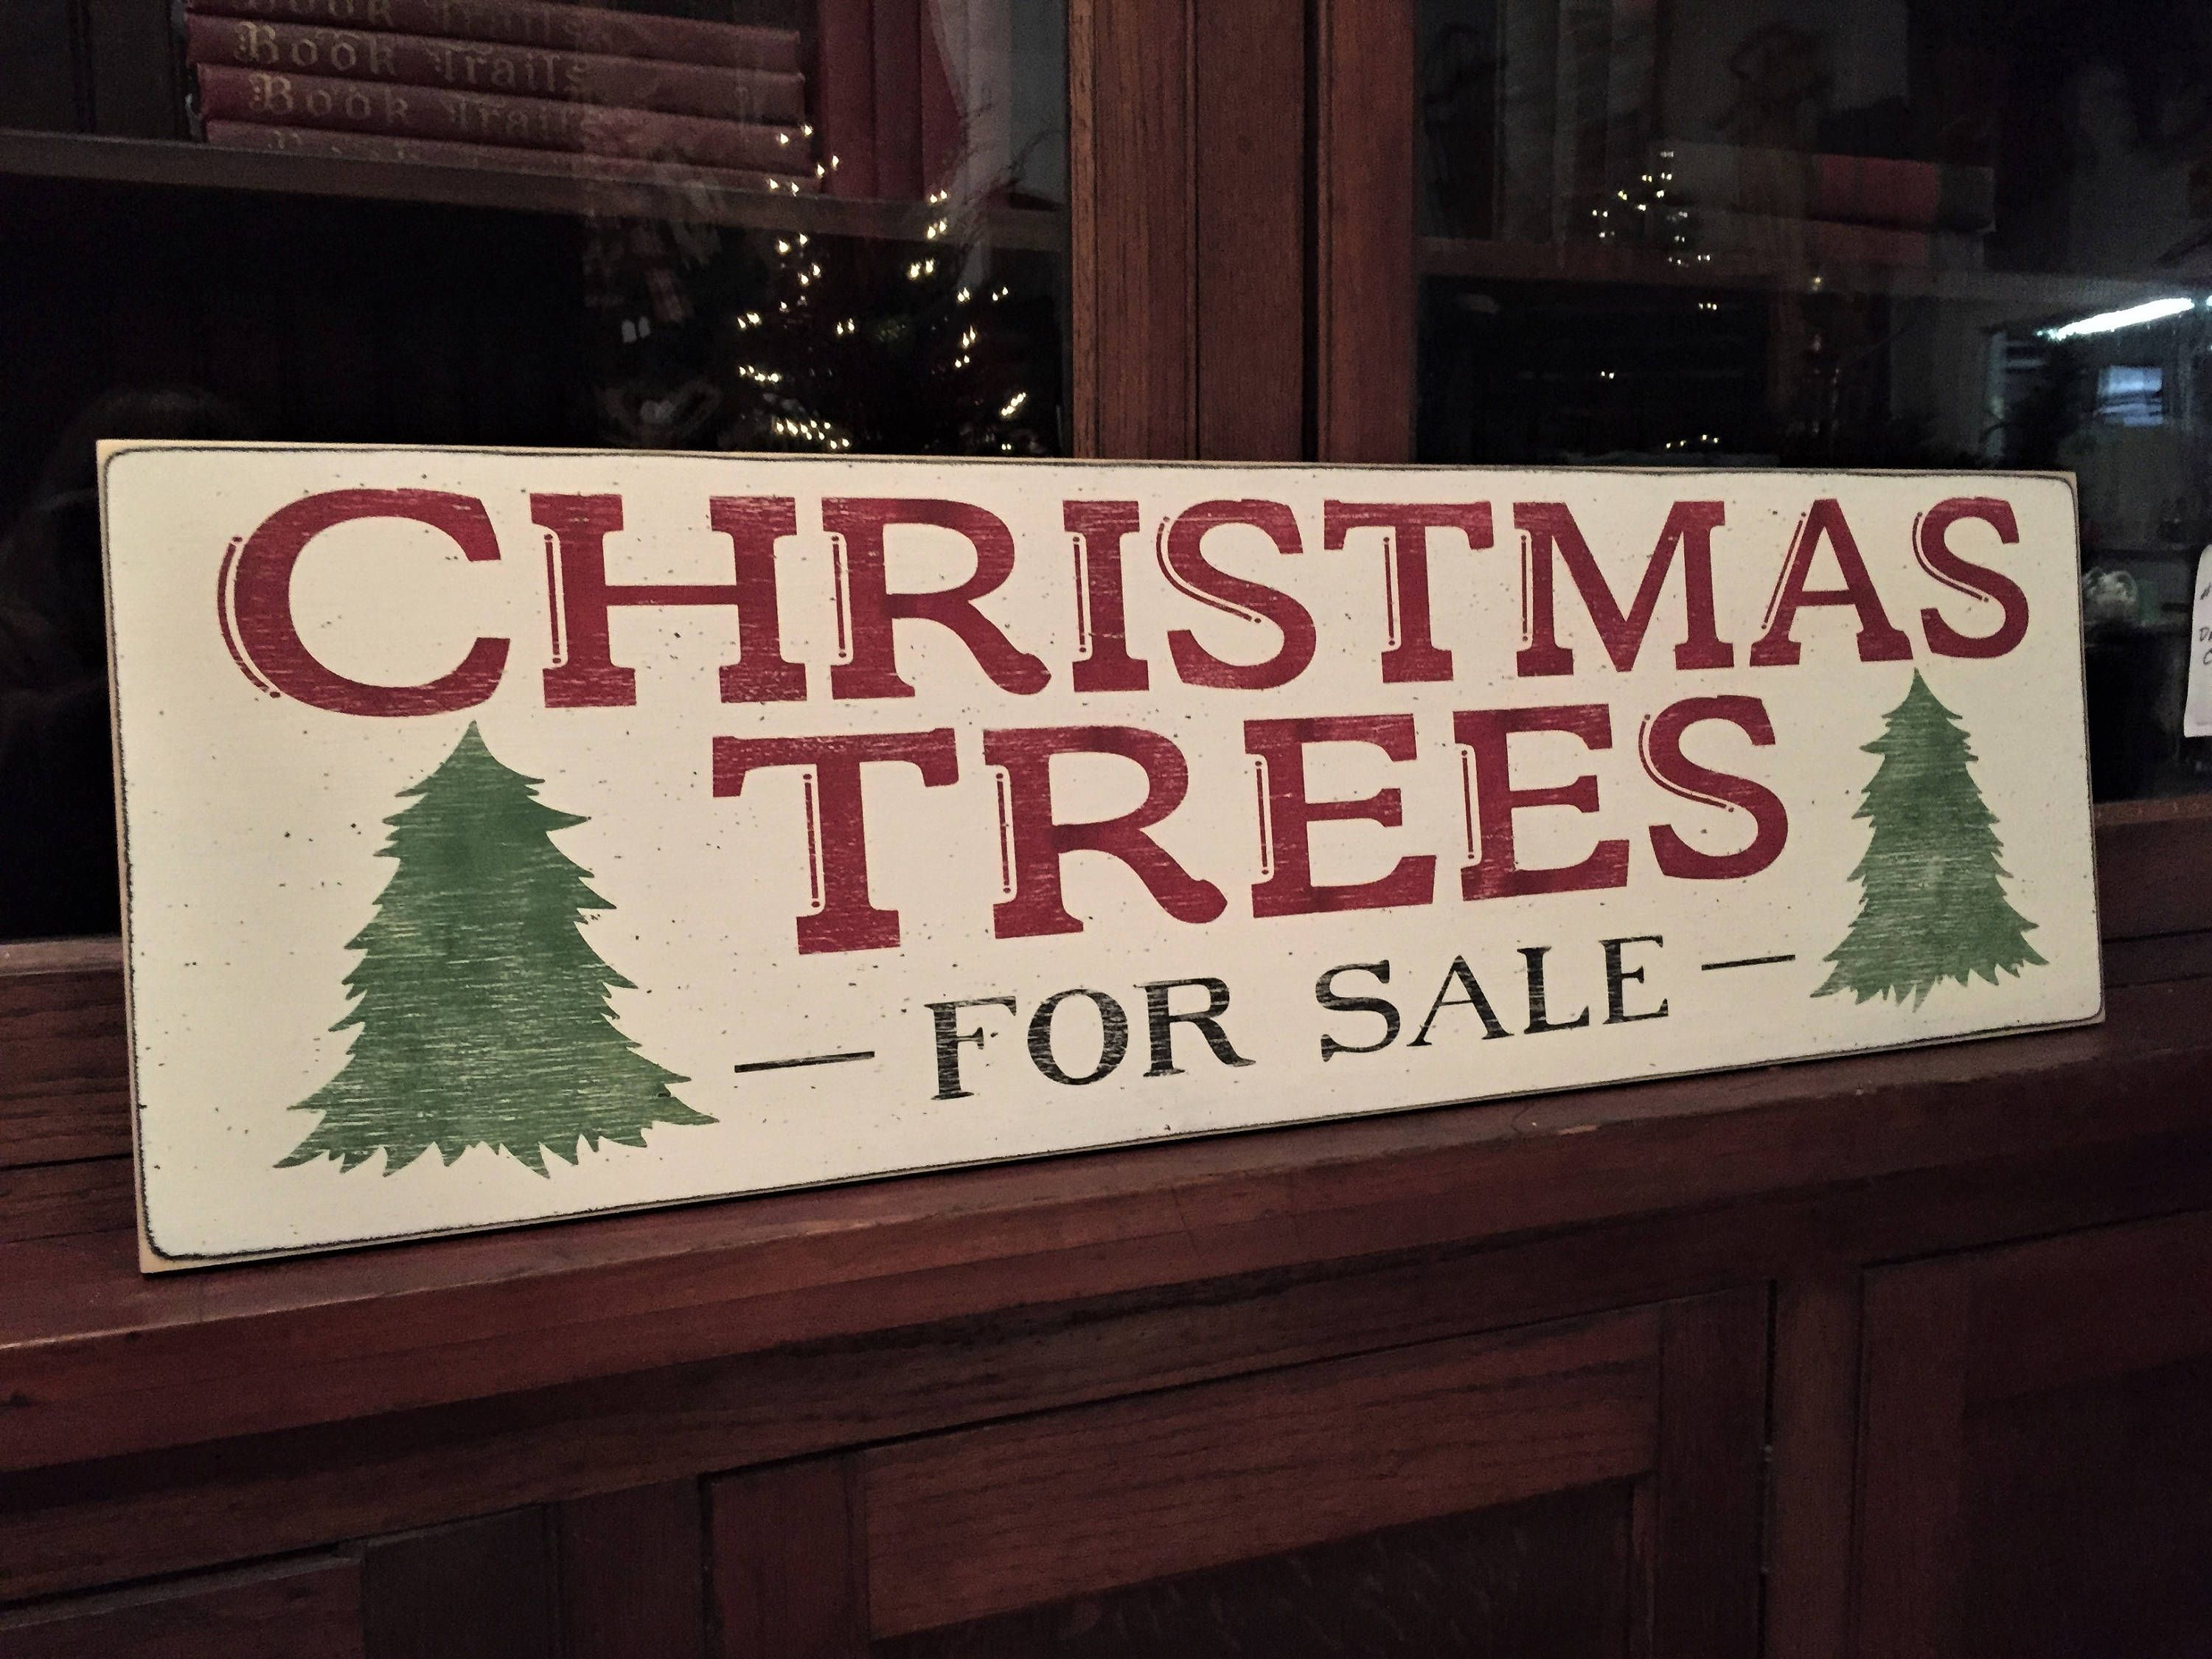 christmas trees for sale sign christmas farmhouse sign rustic fixer upper christmas christmas mantel decor large christmas sign 3ft long - Christmas Mantel Decorations For Sale